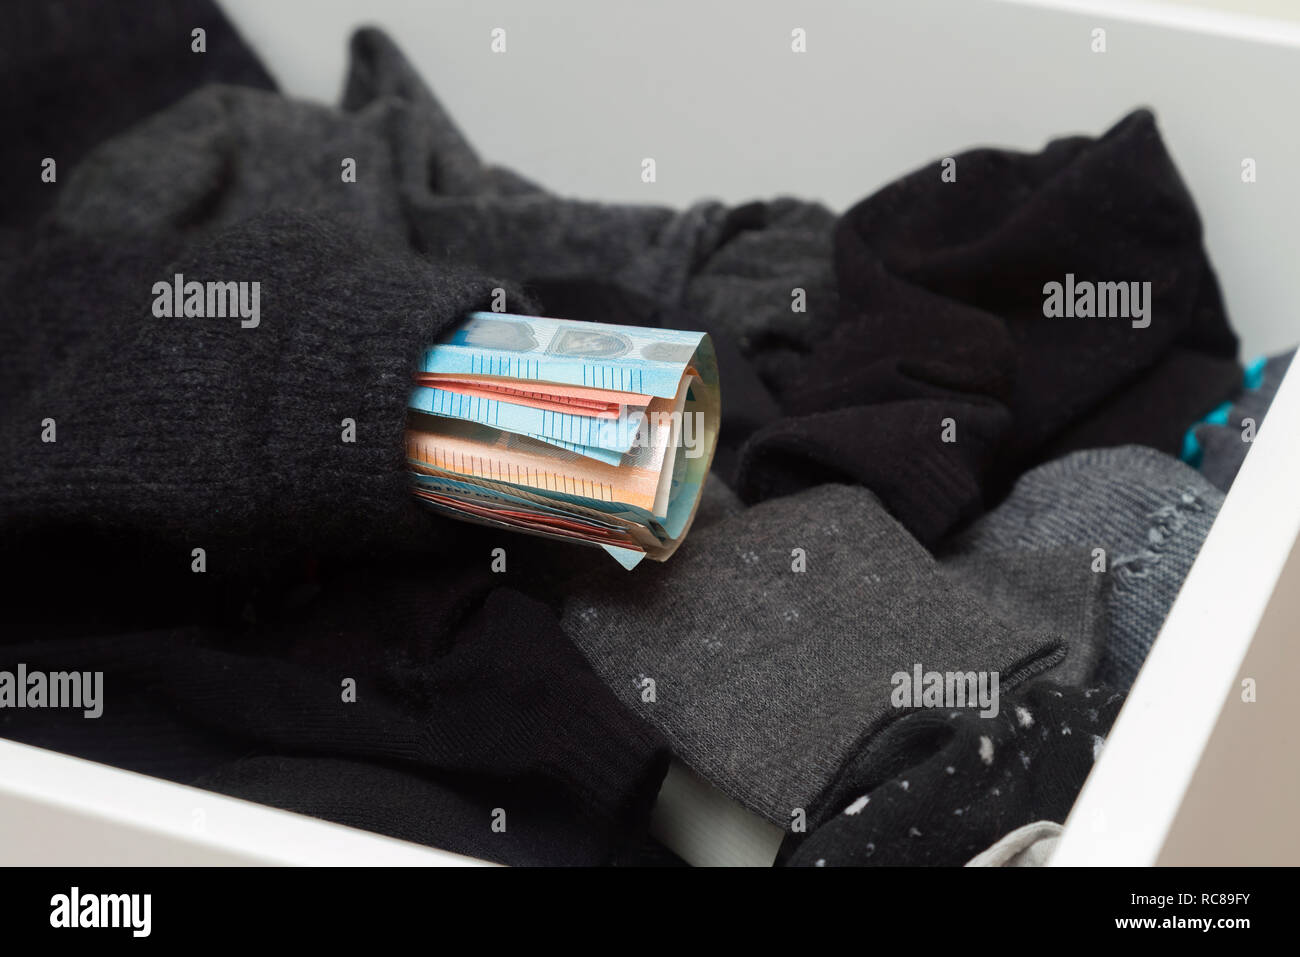 Man putting, hiding money in his socks to save it. Showing no trust in financial institutions and banks, black market - Stock Image